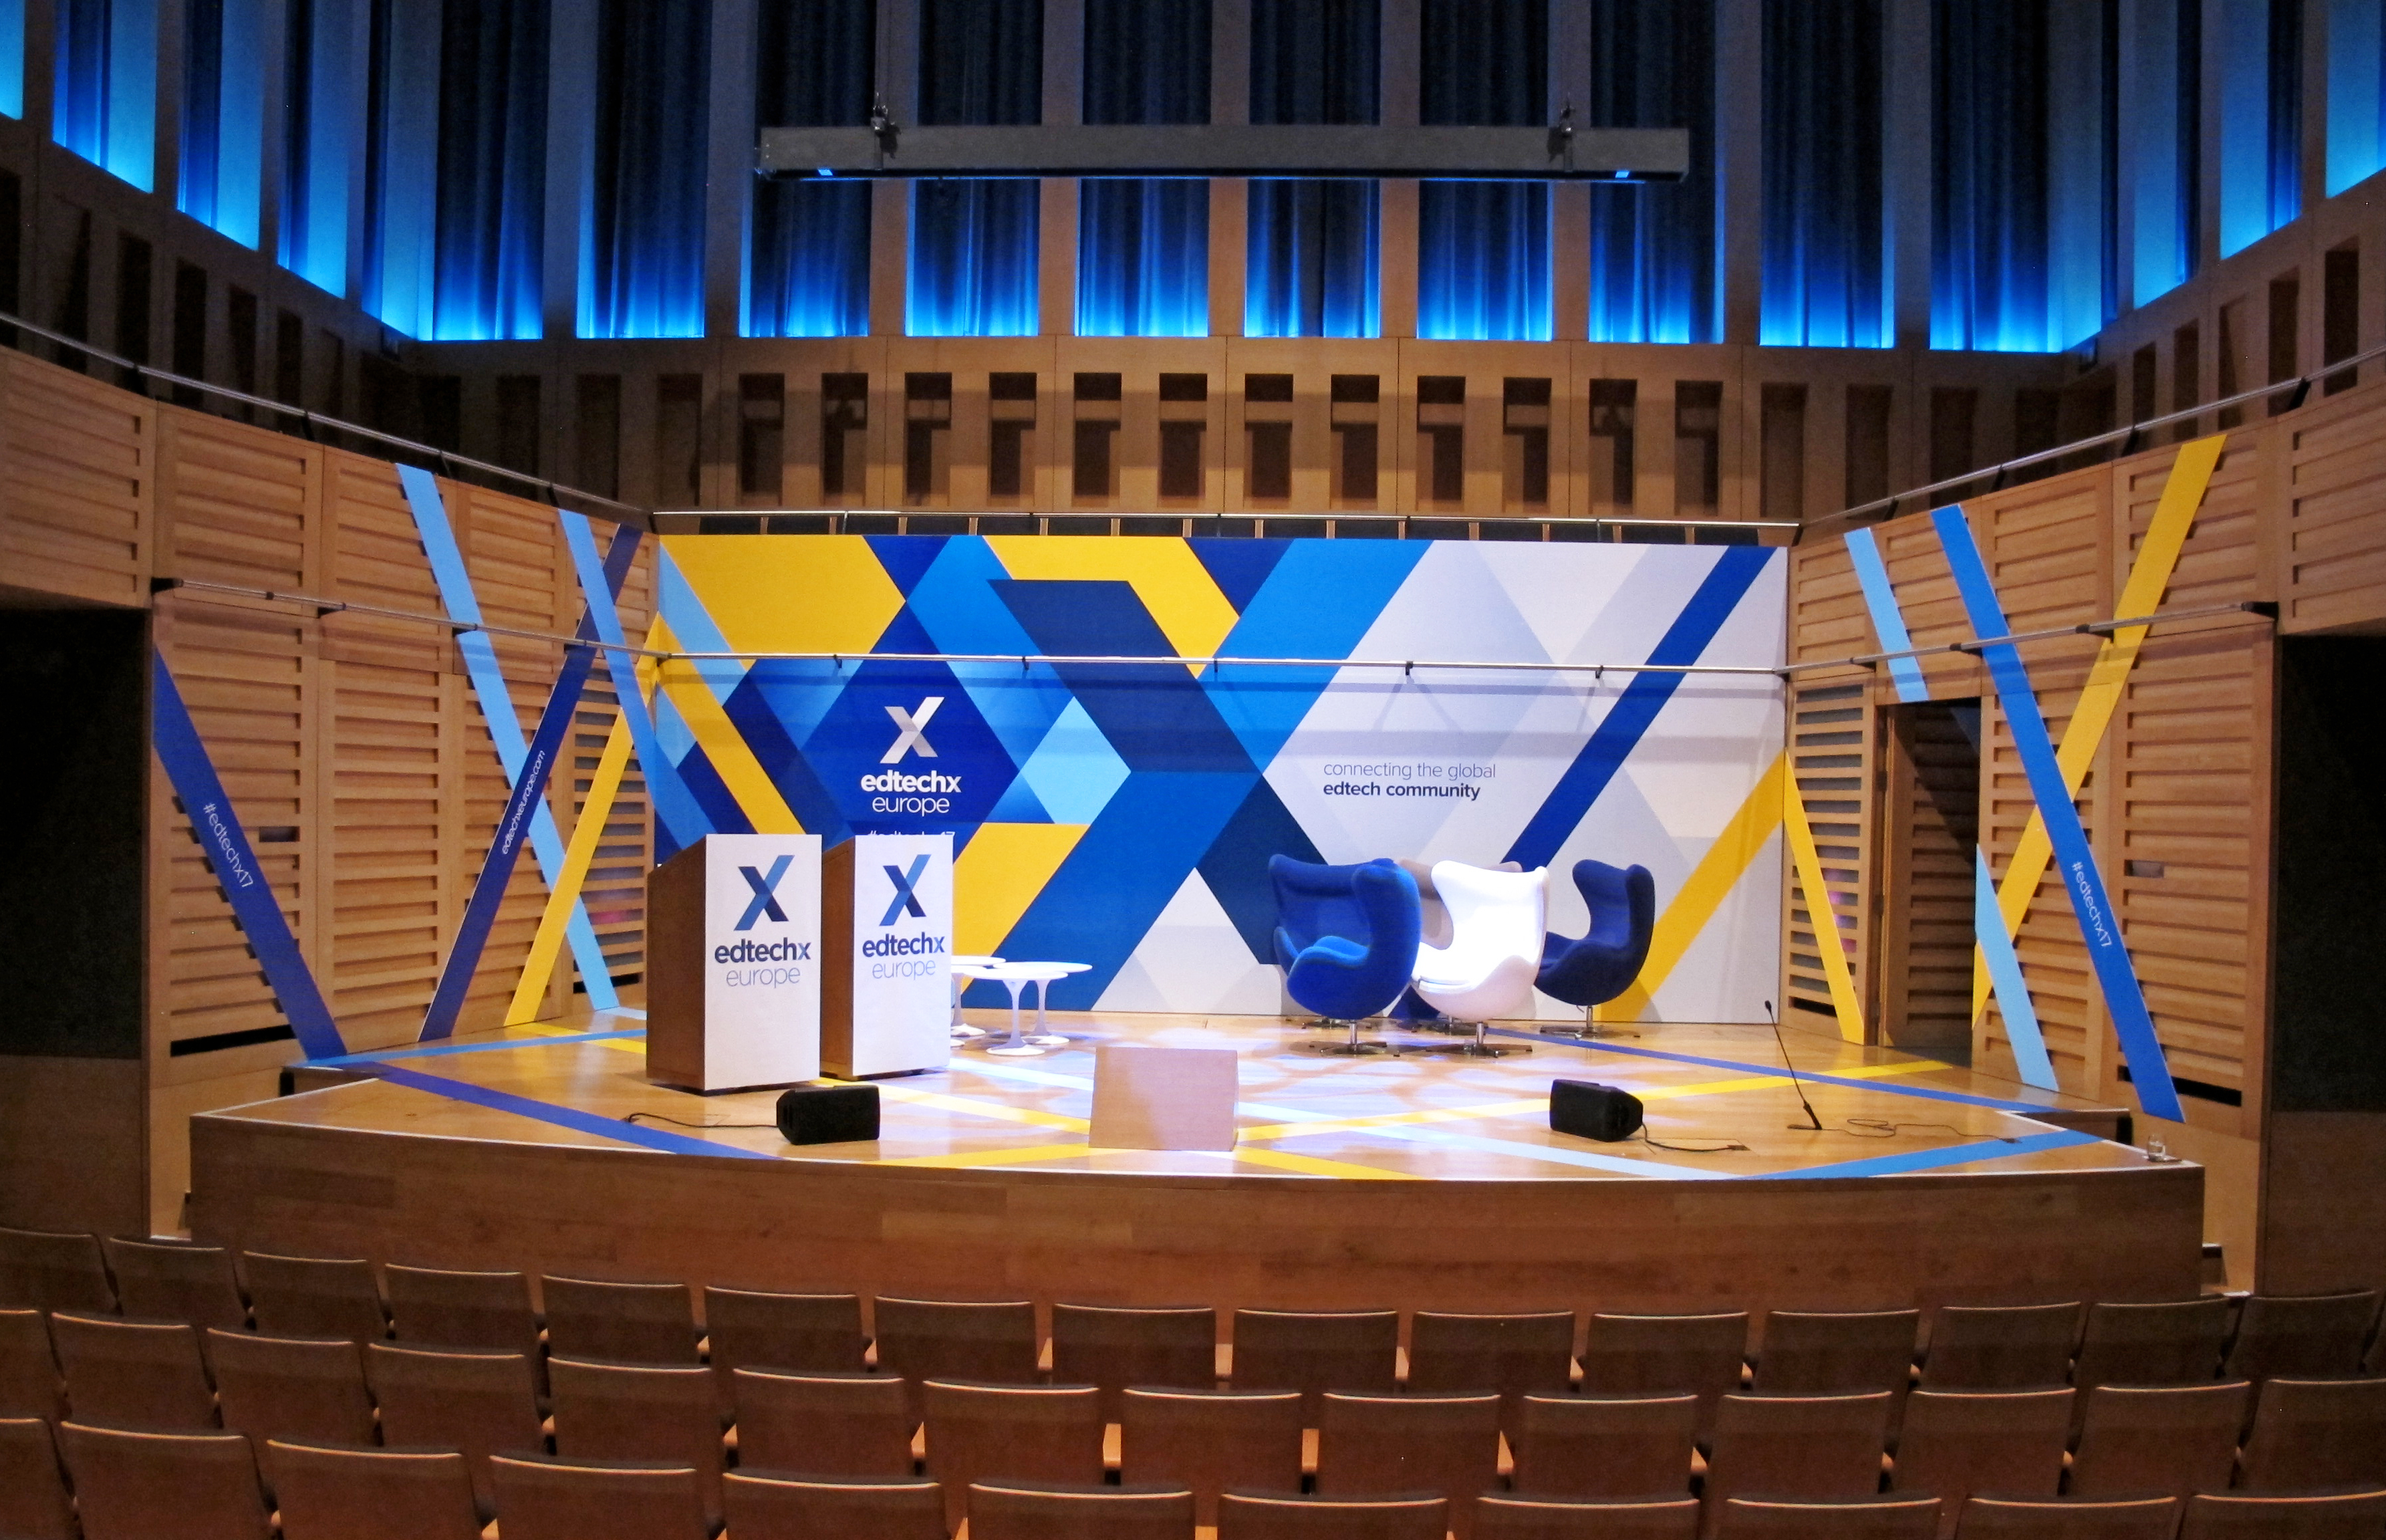 EdTechXEurope Conference graphics Install